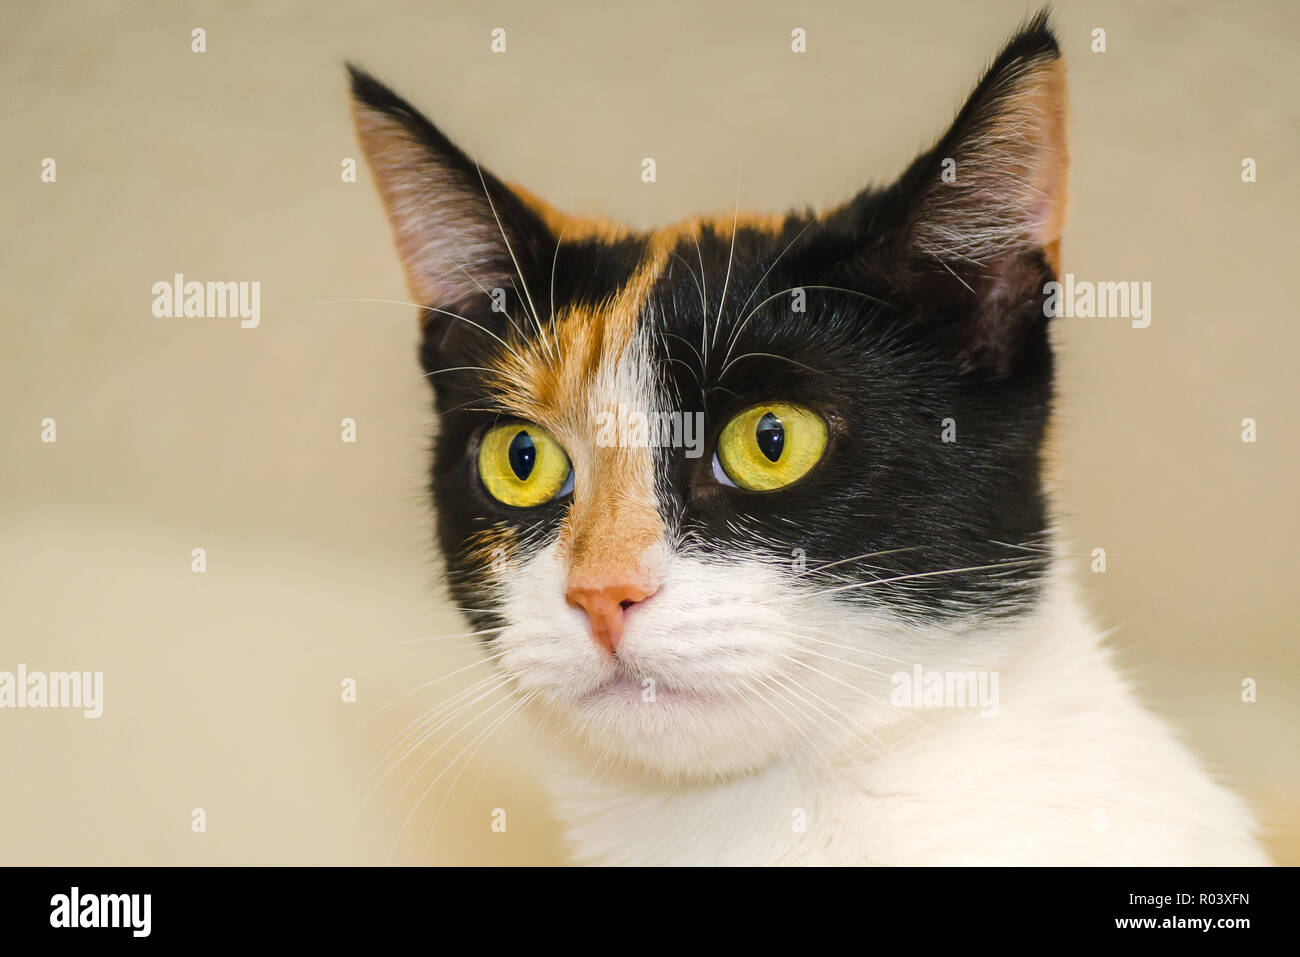 Pumpkin, a one-year-old calico kitten, is pictured, October 30, 2015, in Coden, Alabama. Stock Photo